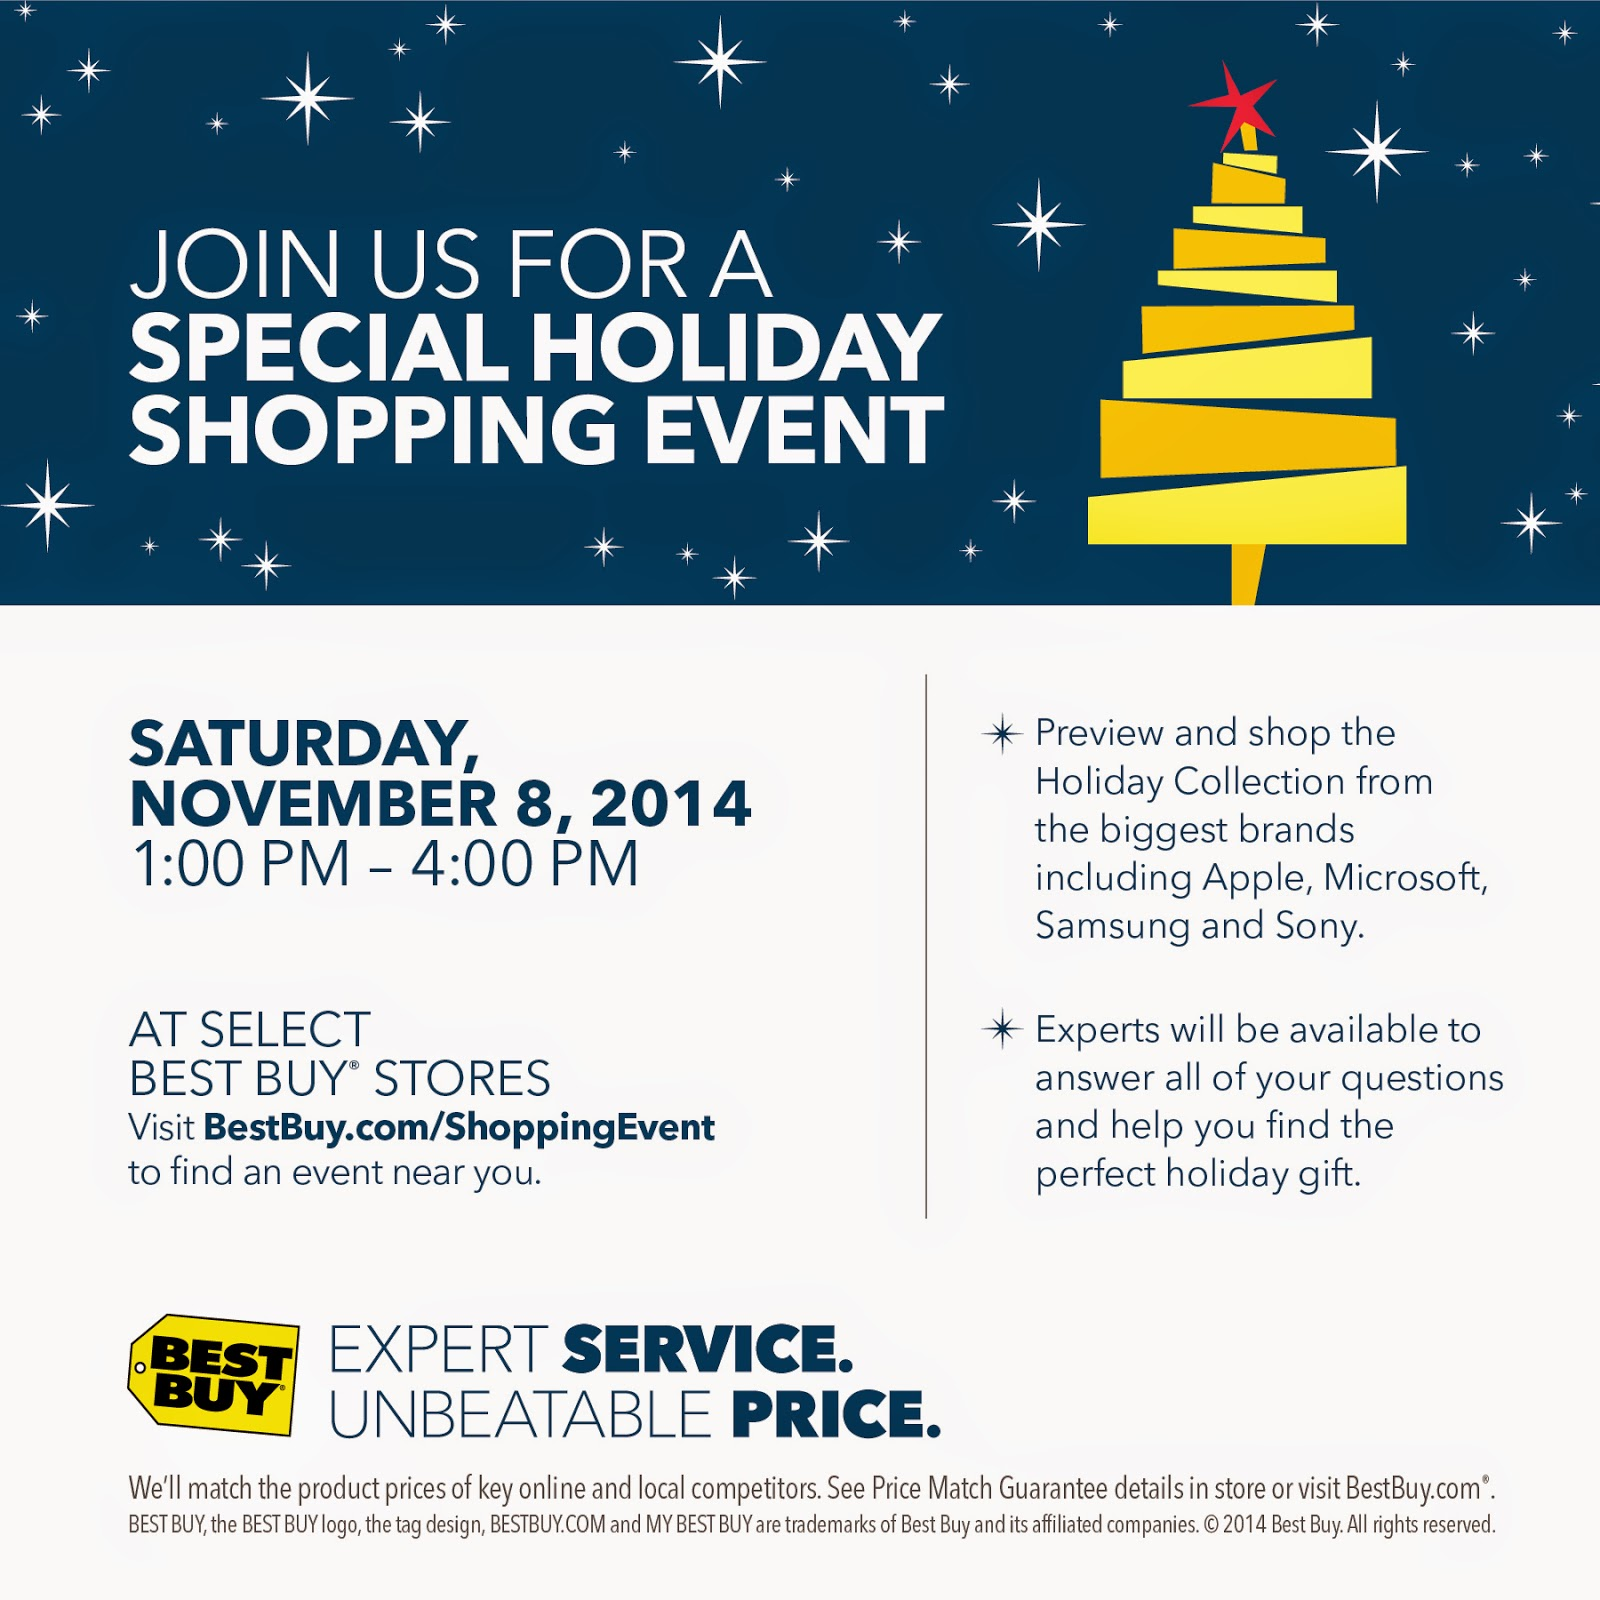 Best Buy Holiday Shopping Event #BBYShoppingEvent